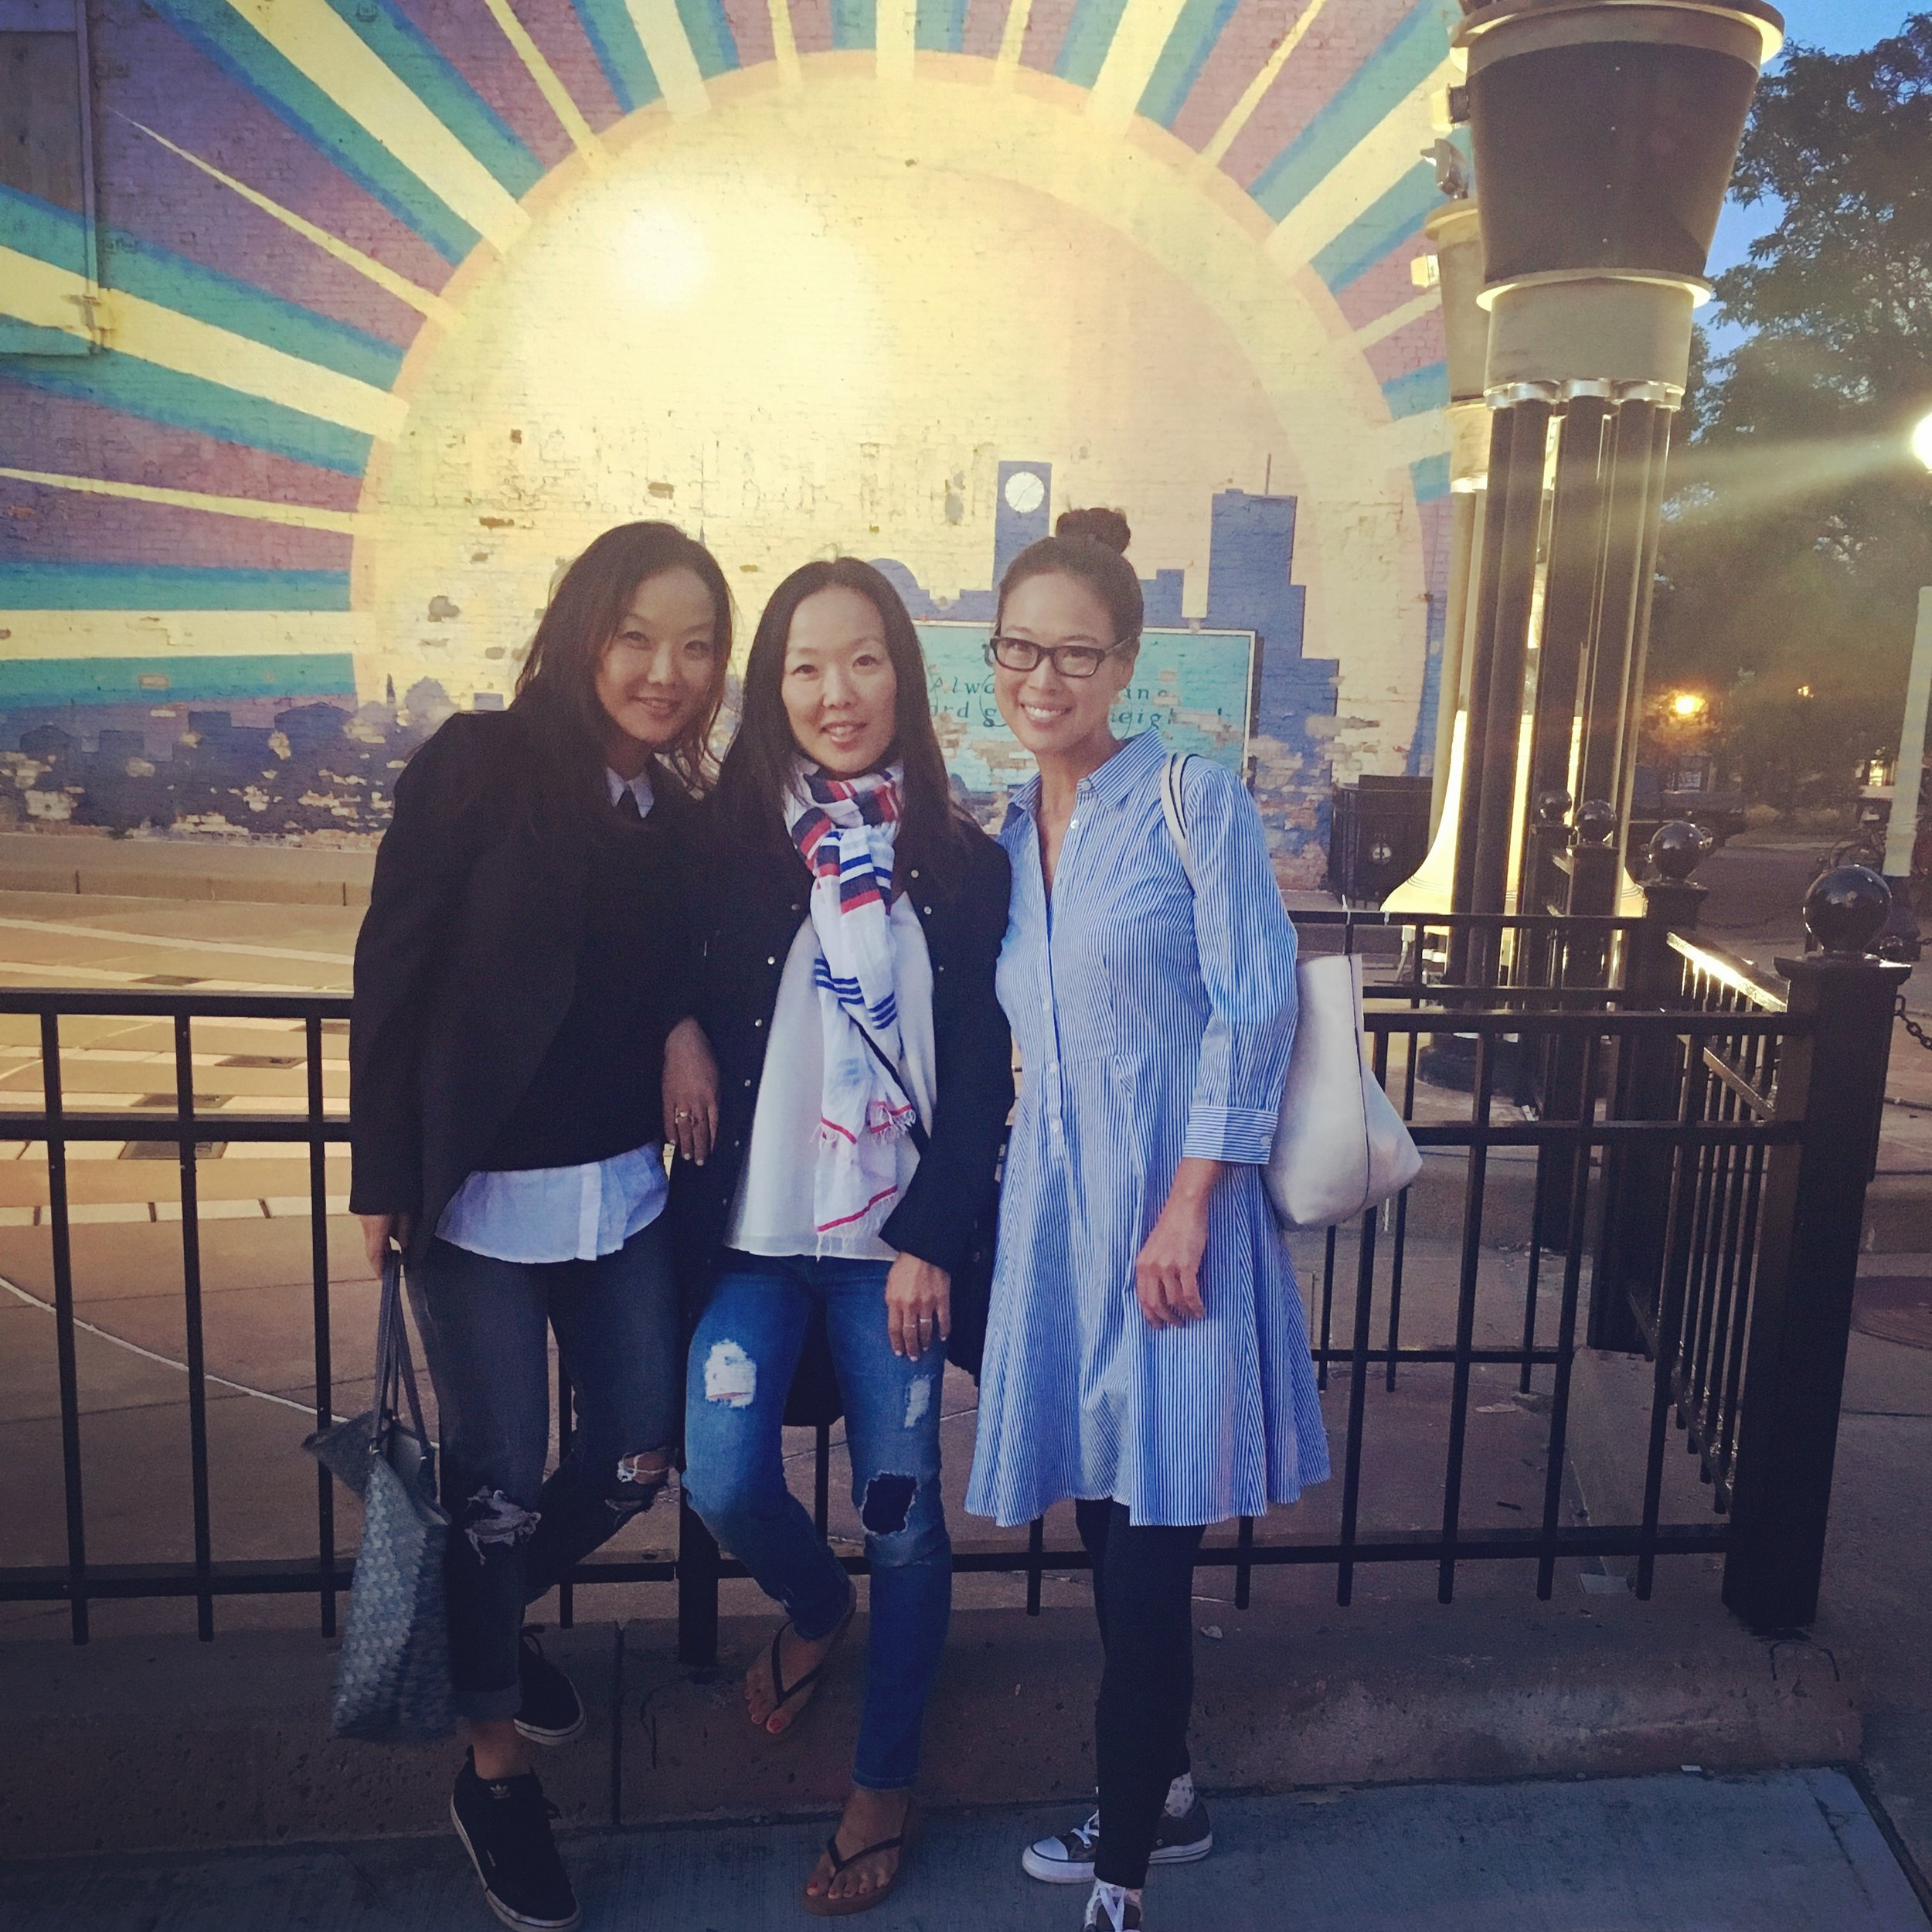 Ahn Trio is in upstate NY, in Utica, to play a concert tmrw, Sep. 17th at 7:30pm at Hamilton College in Clinton, NY! Look foward to a preview of their upcoming album recording! Come and have a great time with Ahn Trio at the Wellin Hall @Hamilton College tmrw night!